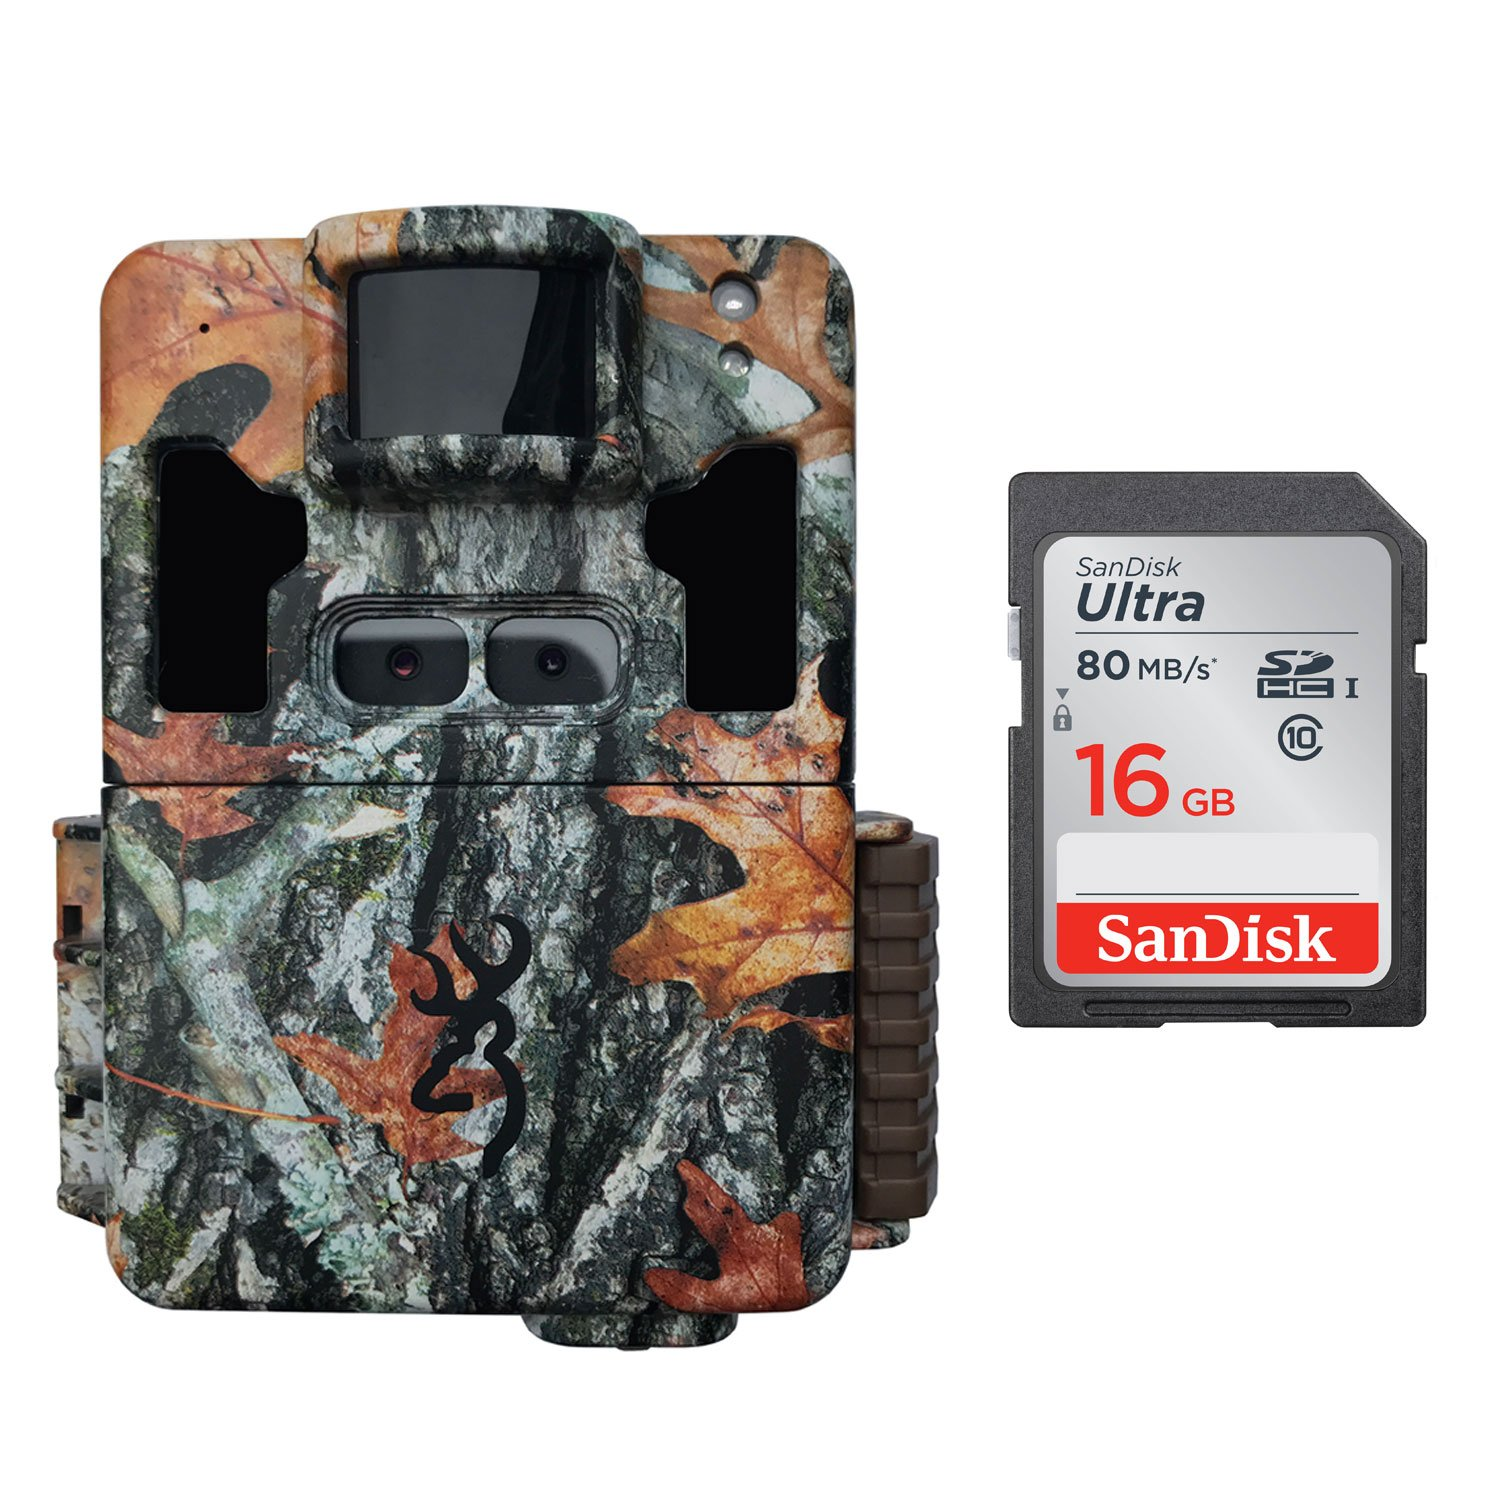 Browning Dark OPS PRO XD Dual Lens Trail Game Camera 24MP with 16GB Card BTC6PXD